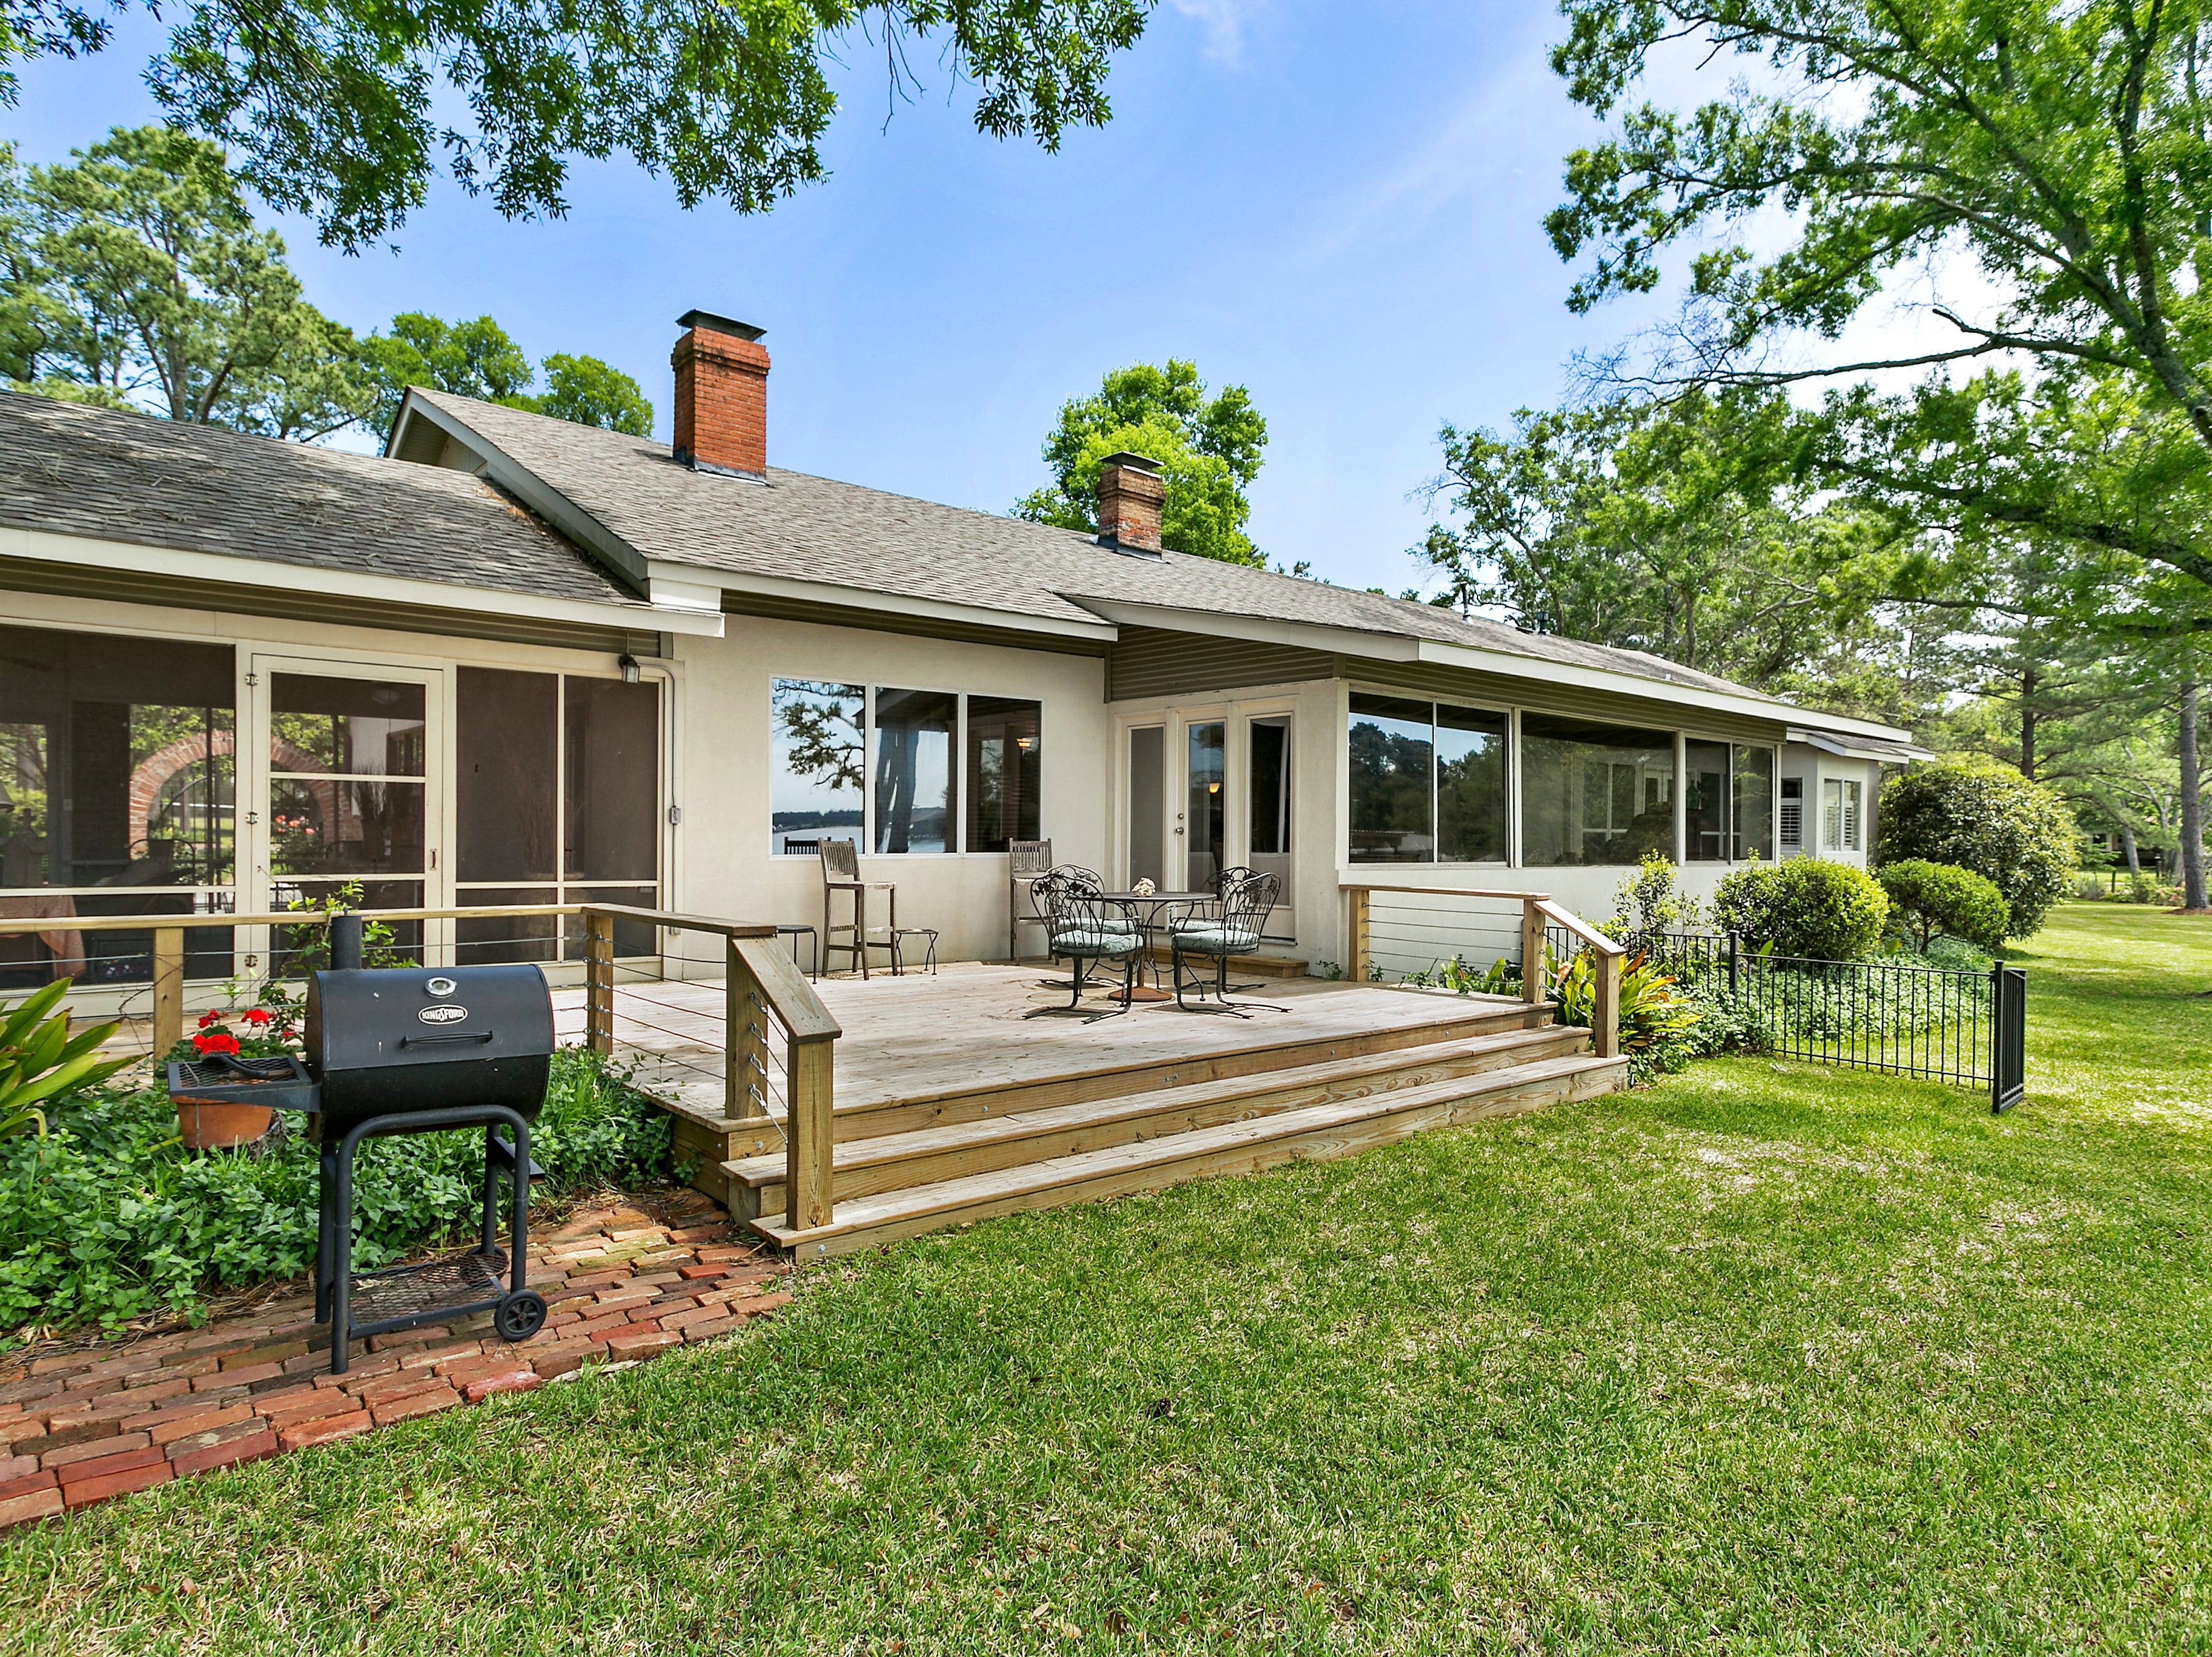 5591 Leisure Lane, Shreveport  Price: $949,900  Details: 4 bedrooms, 5 bathrooms, 3,592 square feet  Features: Open April 14 from 2-4, beautifully restored historic home on 5.8 acres with 10 ft. ceilings, cook's cypress cabinets, large screened porch with outdoor kitchen, new deck, private tennis court, 30x40 barn/workshop, fenced pasture, boat dock, underground fallout shelter/wine cellar.   Contact: Kathy Lex 426-5023